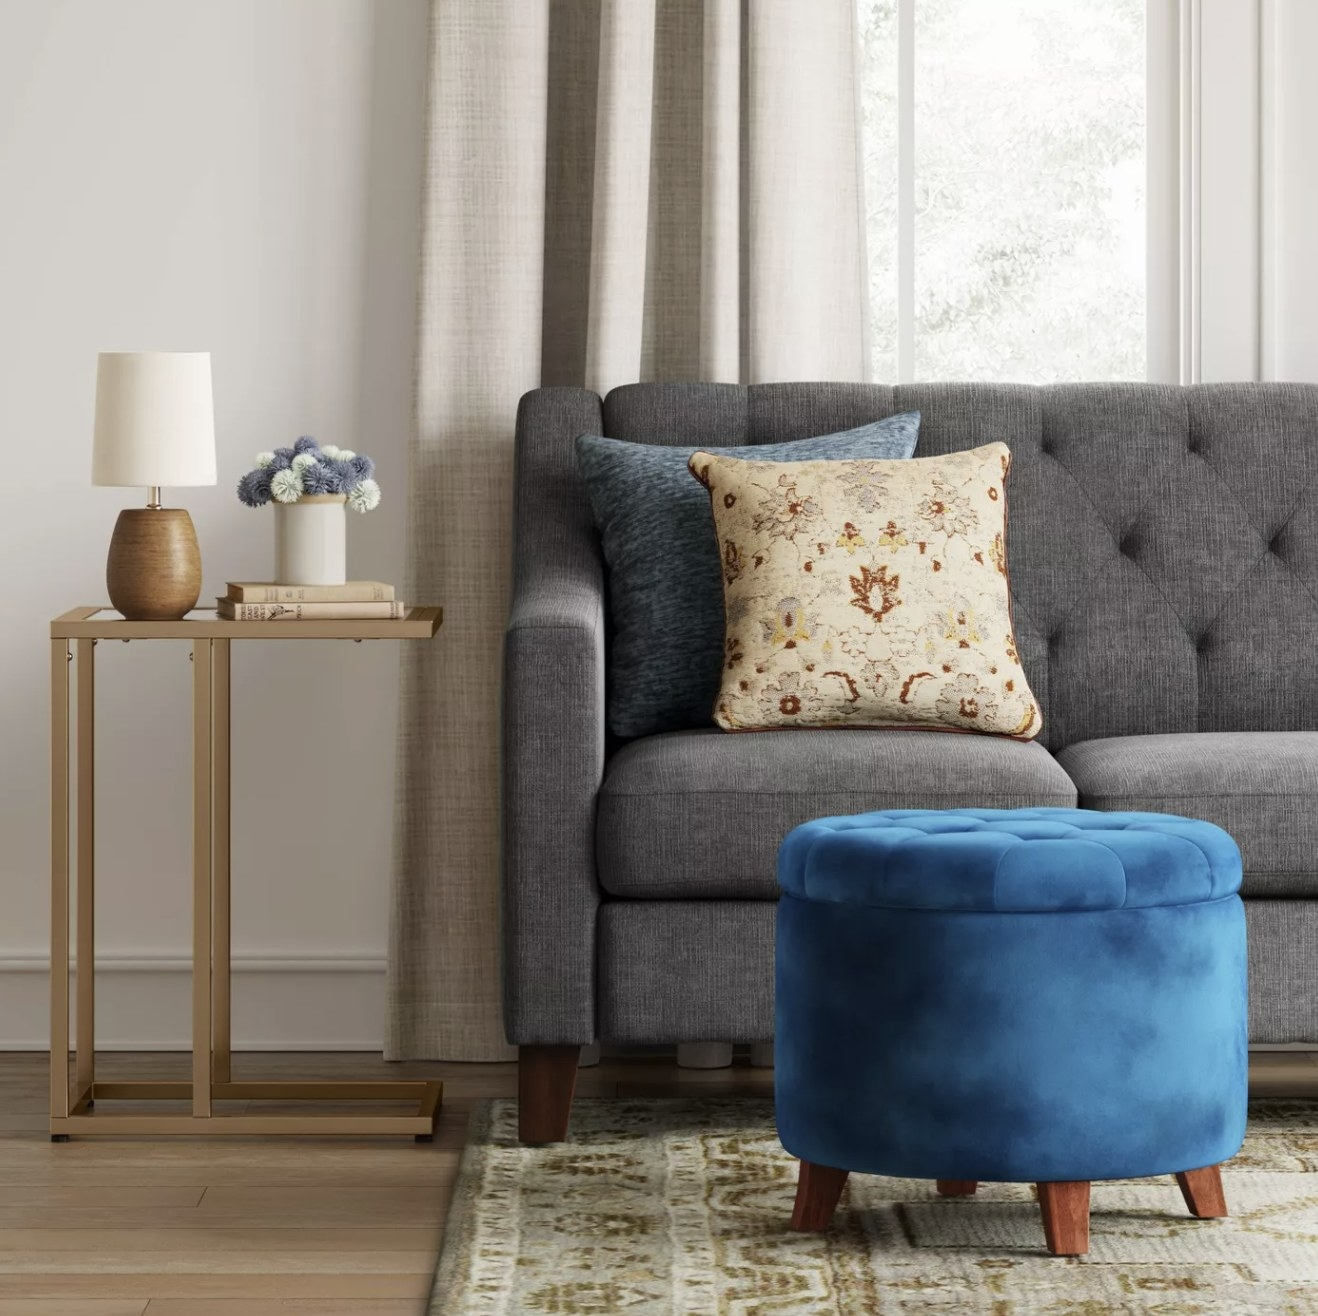 A round blue storage ottoman with a quilted top and brown wooden legs